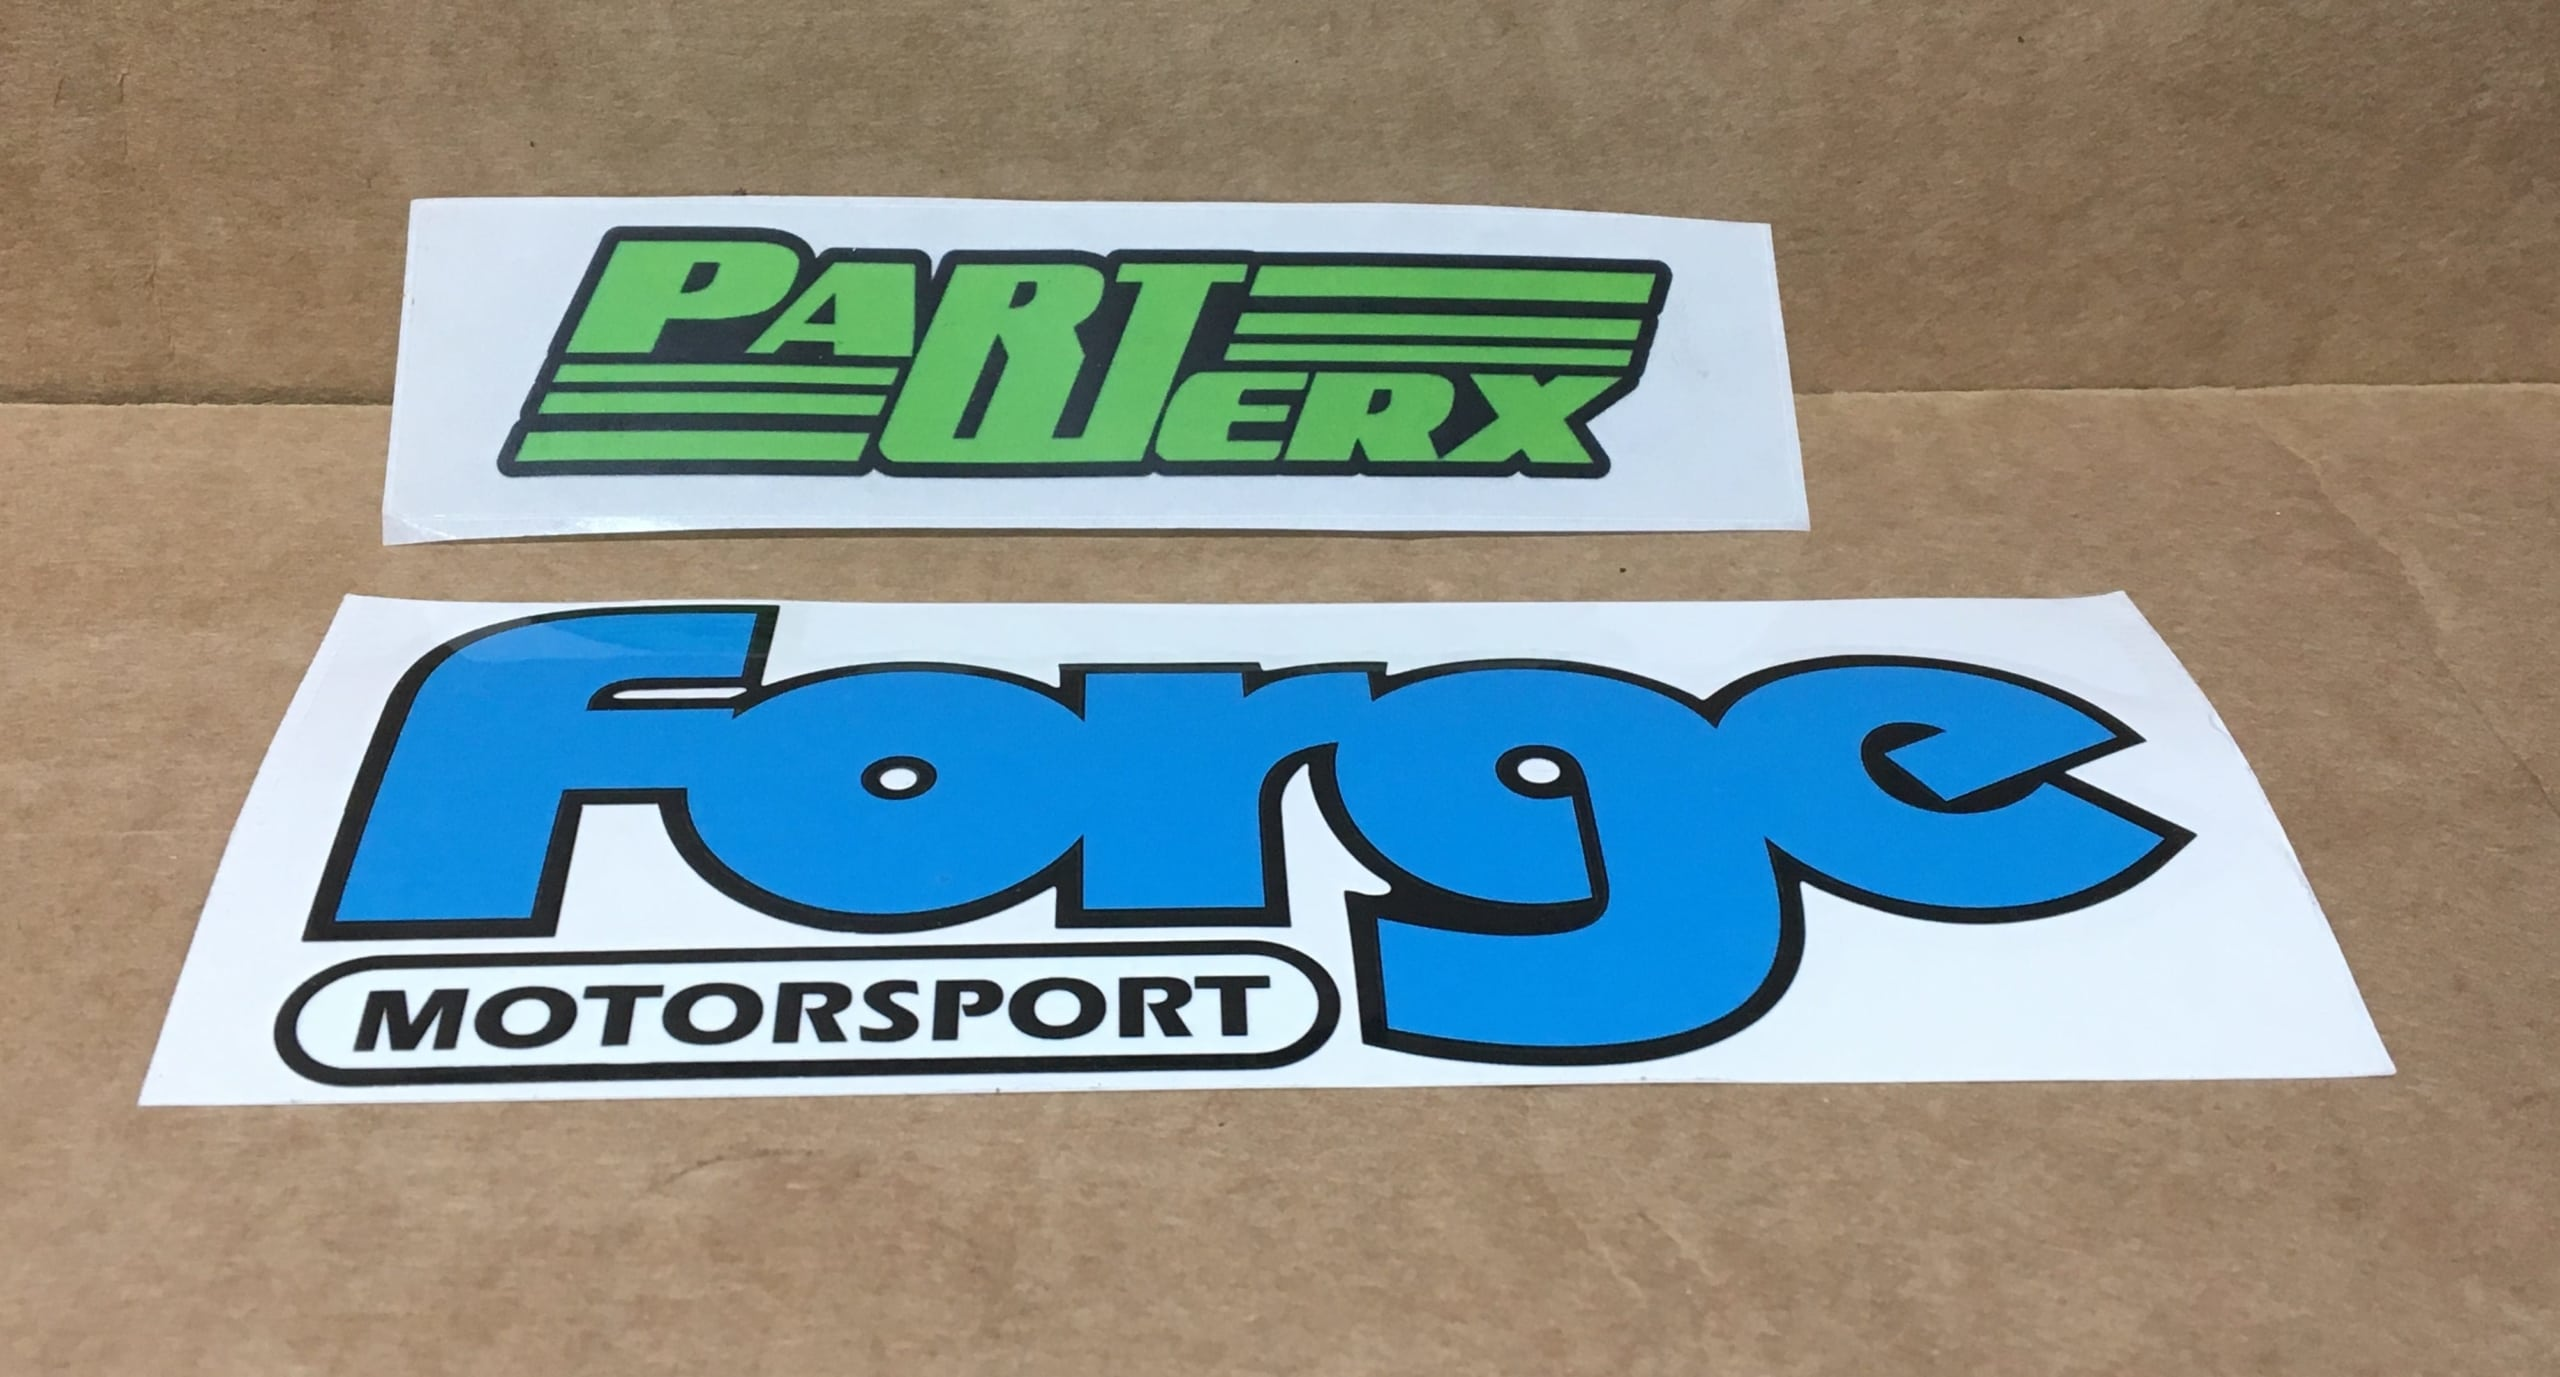 Forge Motorsport Vinyl Sticker Decal Blue Slap on Self Adhesive Fans Accessory Gift